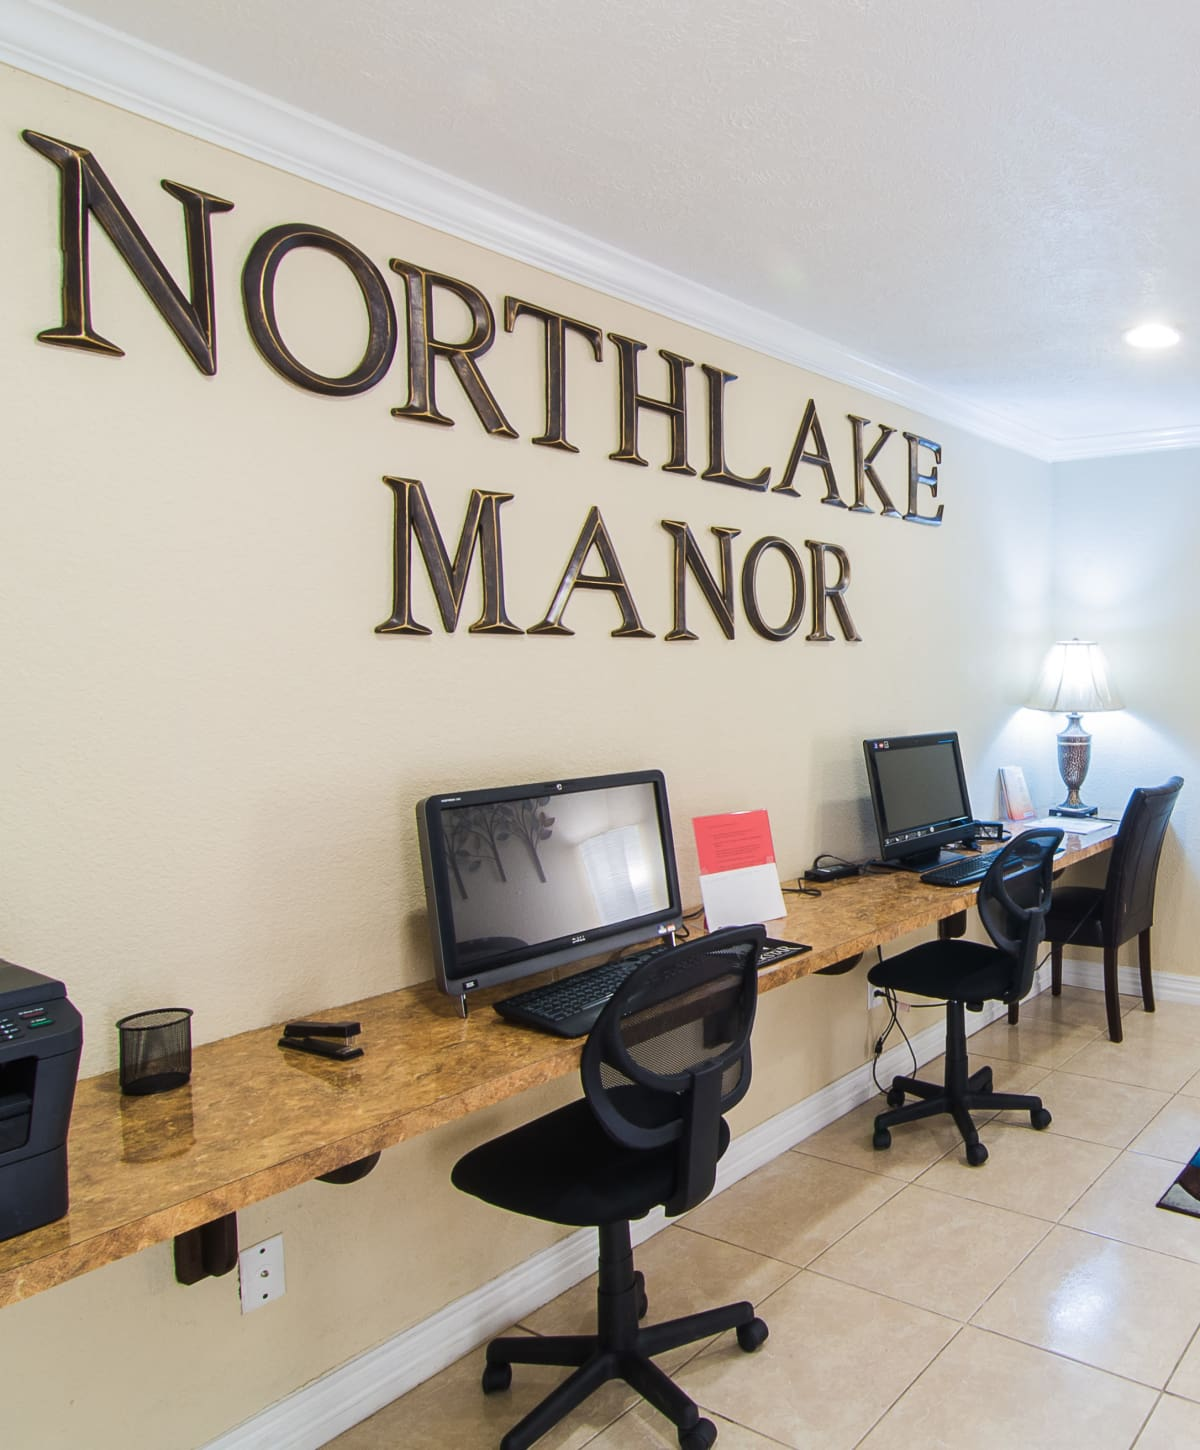 Northlake Manor Apartments in Humble, TX